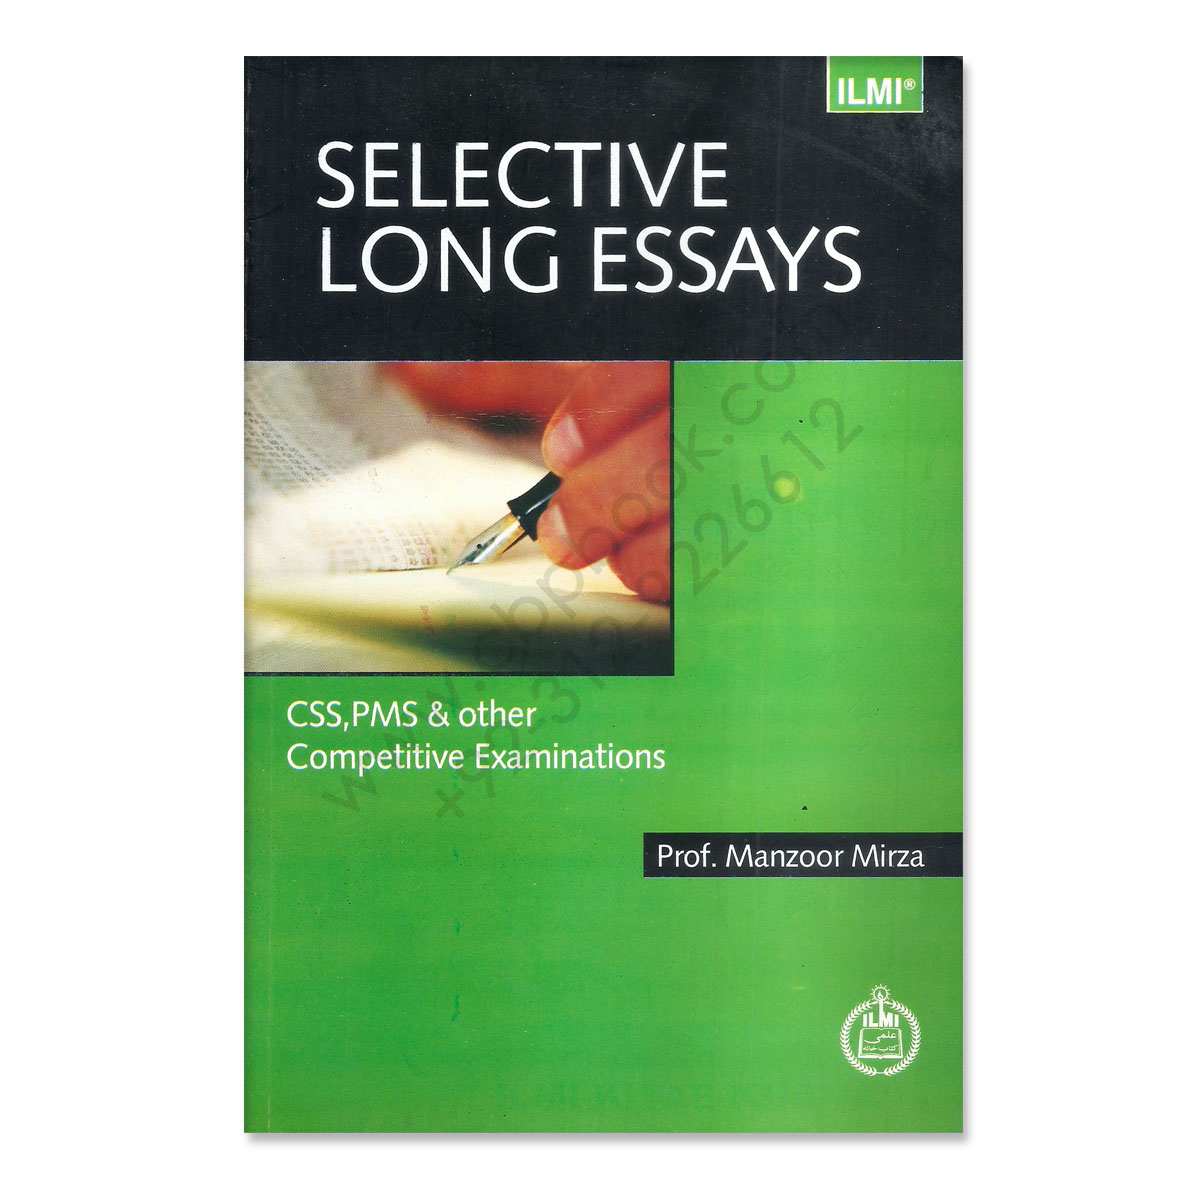 ilmi selective long essays for css pms by prof manzoor mirza  ilmi selective long essays